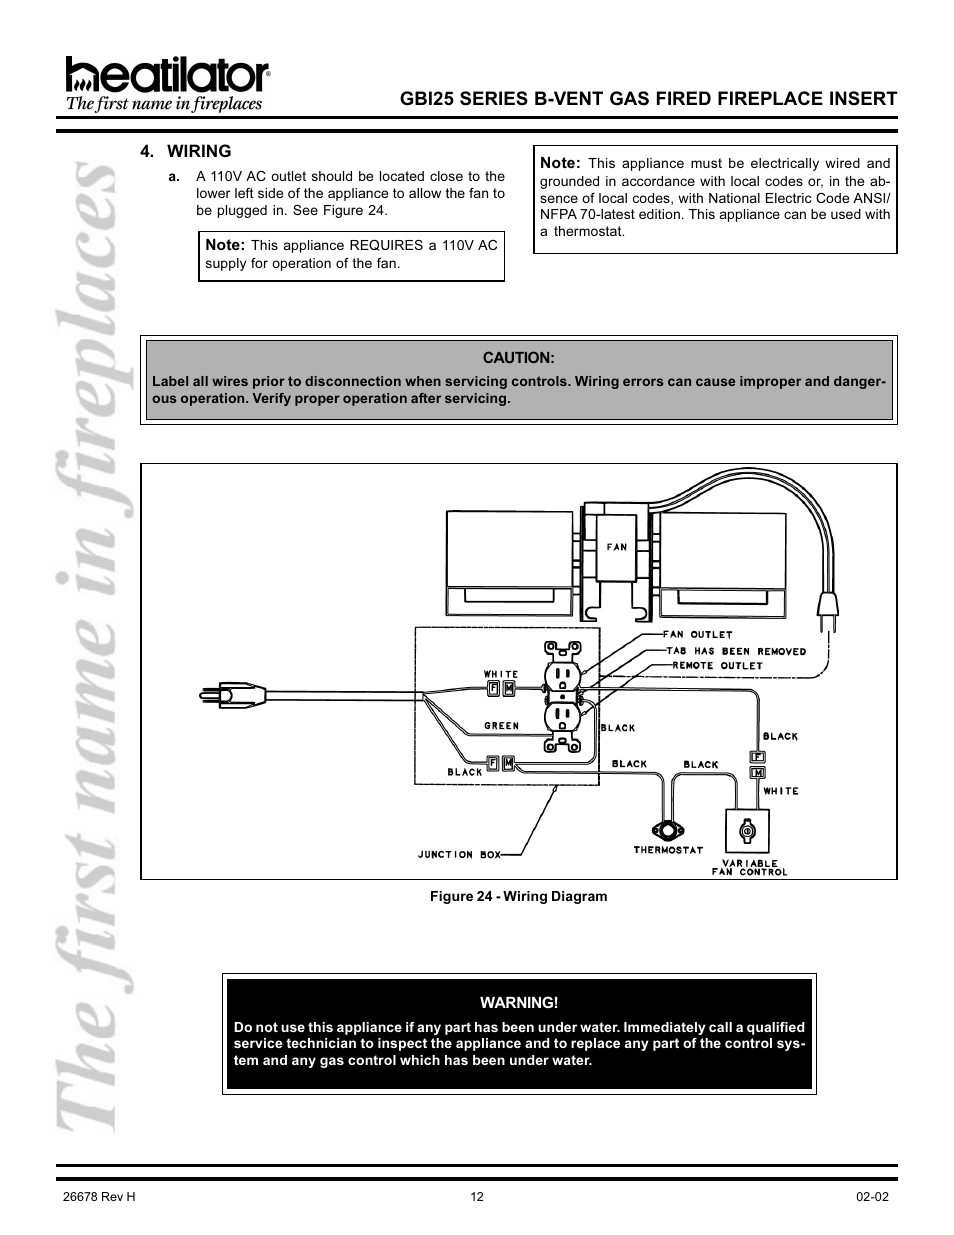 hight resolution of wiring gbi25 series b vent gas fired fireplace insert hearth and home technologies gbi25 user manual page 12 24